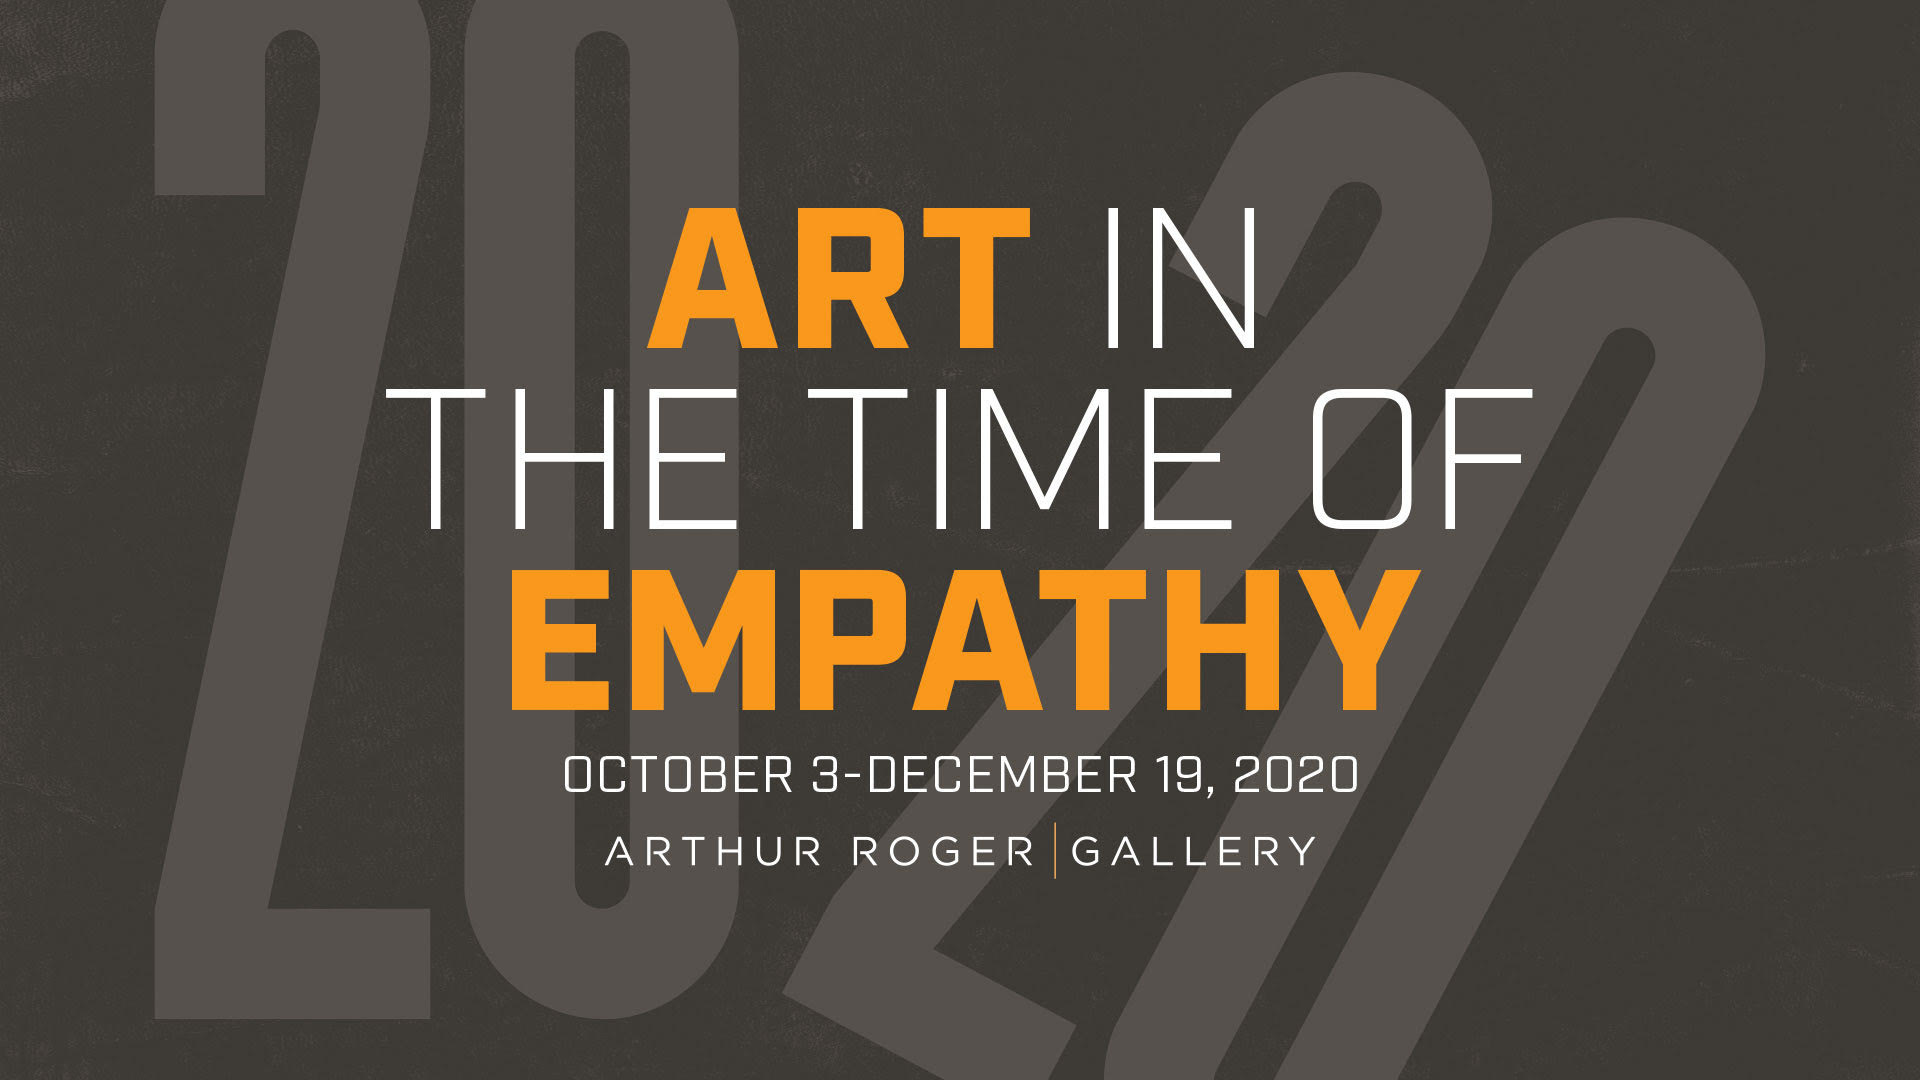 Art in the Time of Empathy